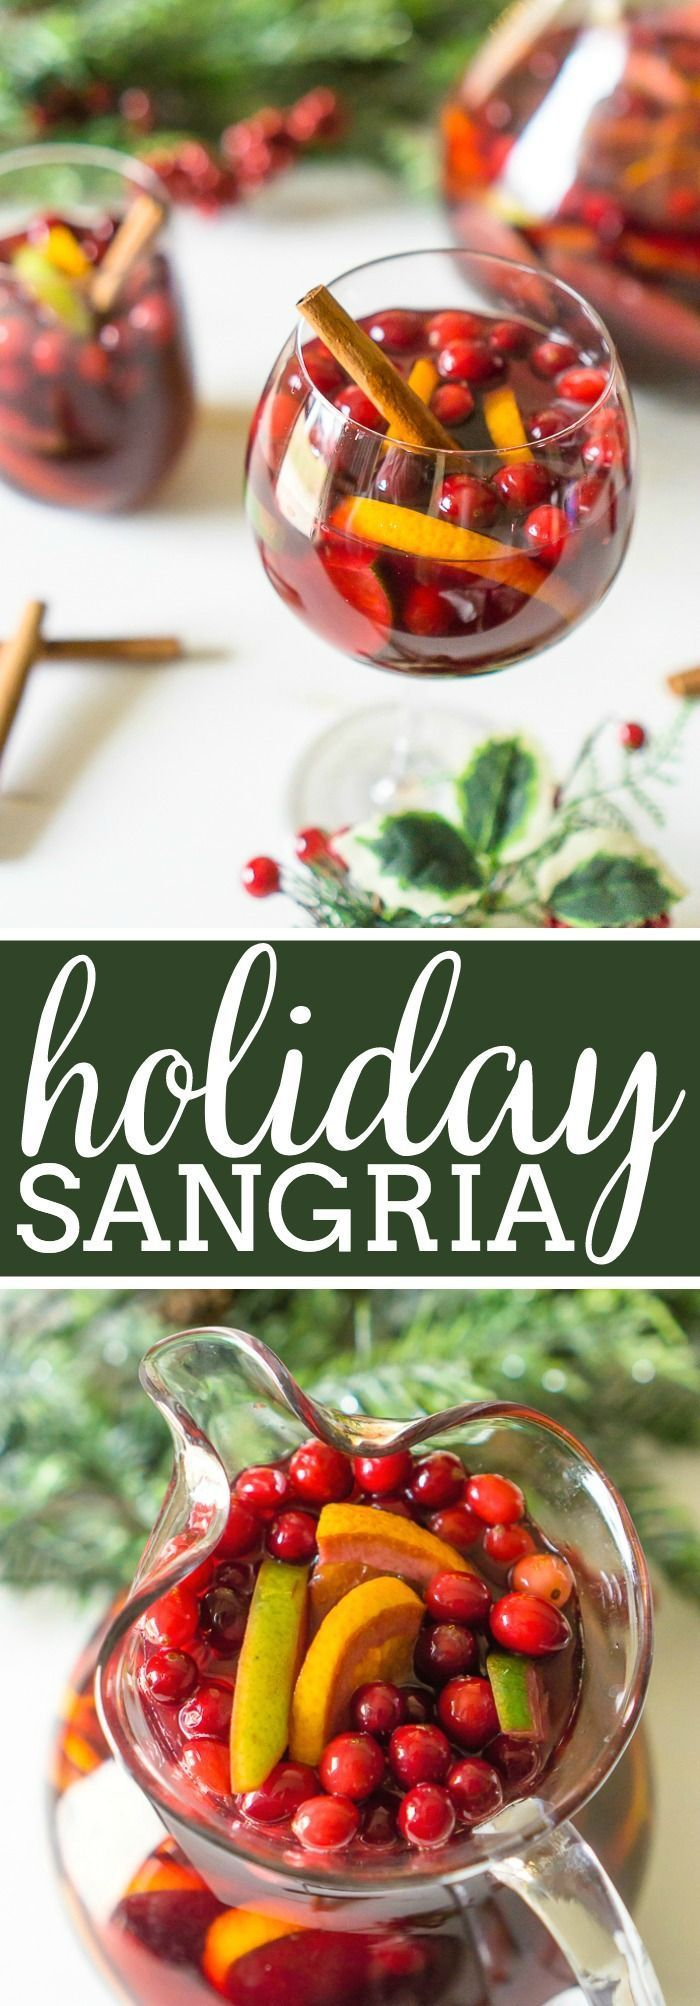 Don't forget to add a special holiday cocktail recipe to your Christmas menu this year, like this Citrus Cranberry Holiday Sangria! Filled with cranberries, citrus, pears, a subtle hint of cinnamon, and sweet red wine, you'll love every sip of this red sangria recipe! | The Love Nerds #winecocktail #christmascocktail #cranberrycocktail via @lovenerdmaggie